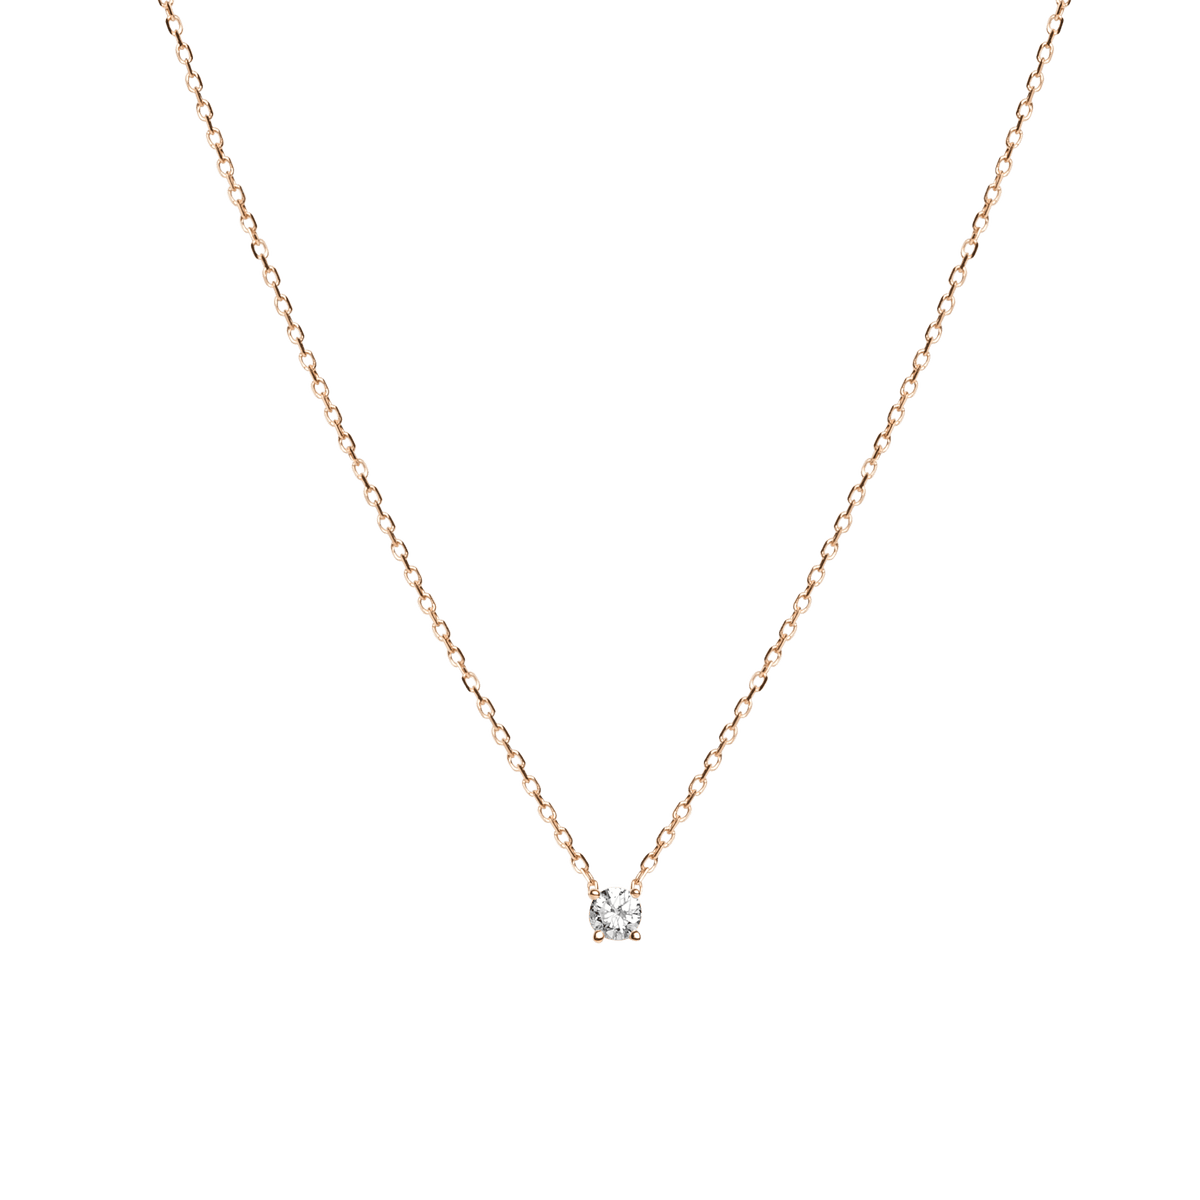 79fe965b7034d Medium Diamond Pendant Necklace – AUrate New York